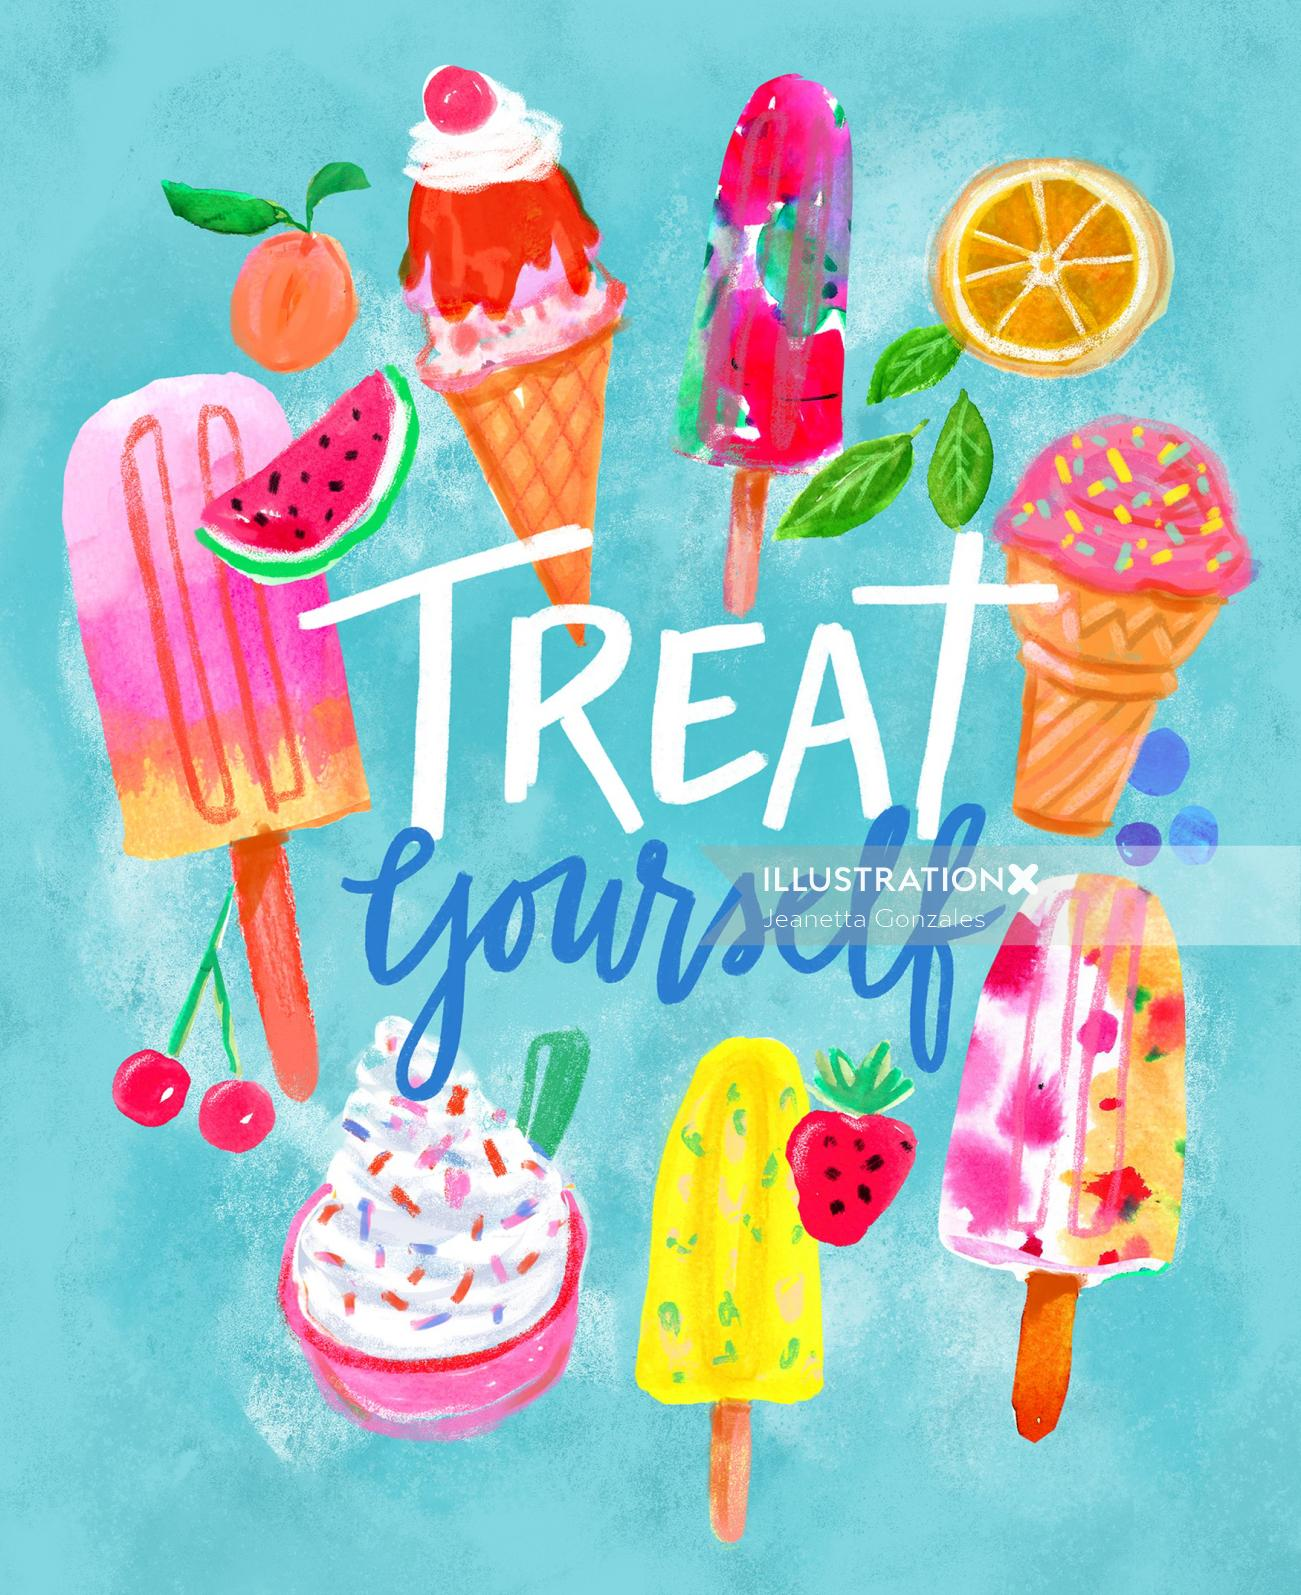 Lettering art of treat yourself